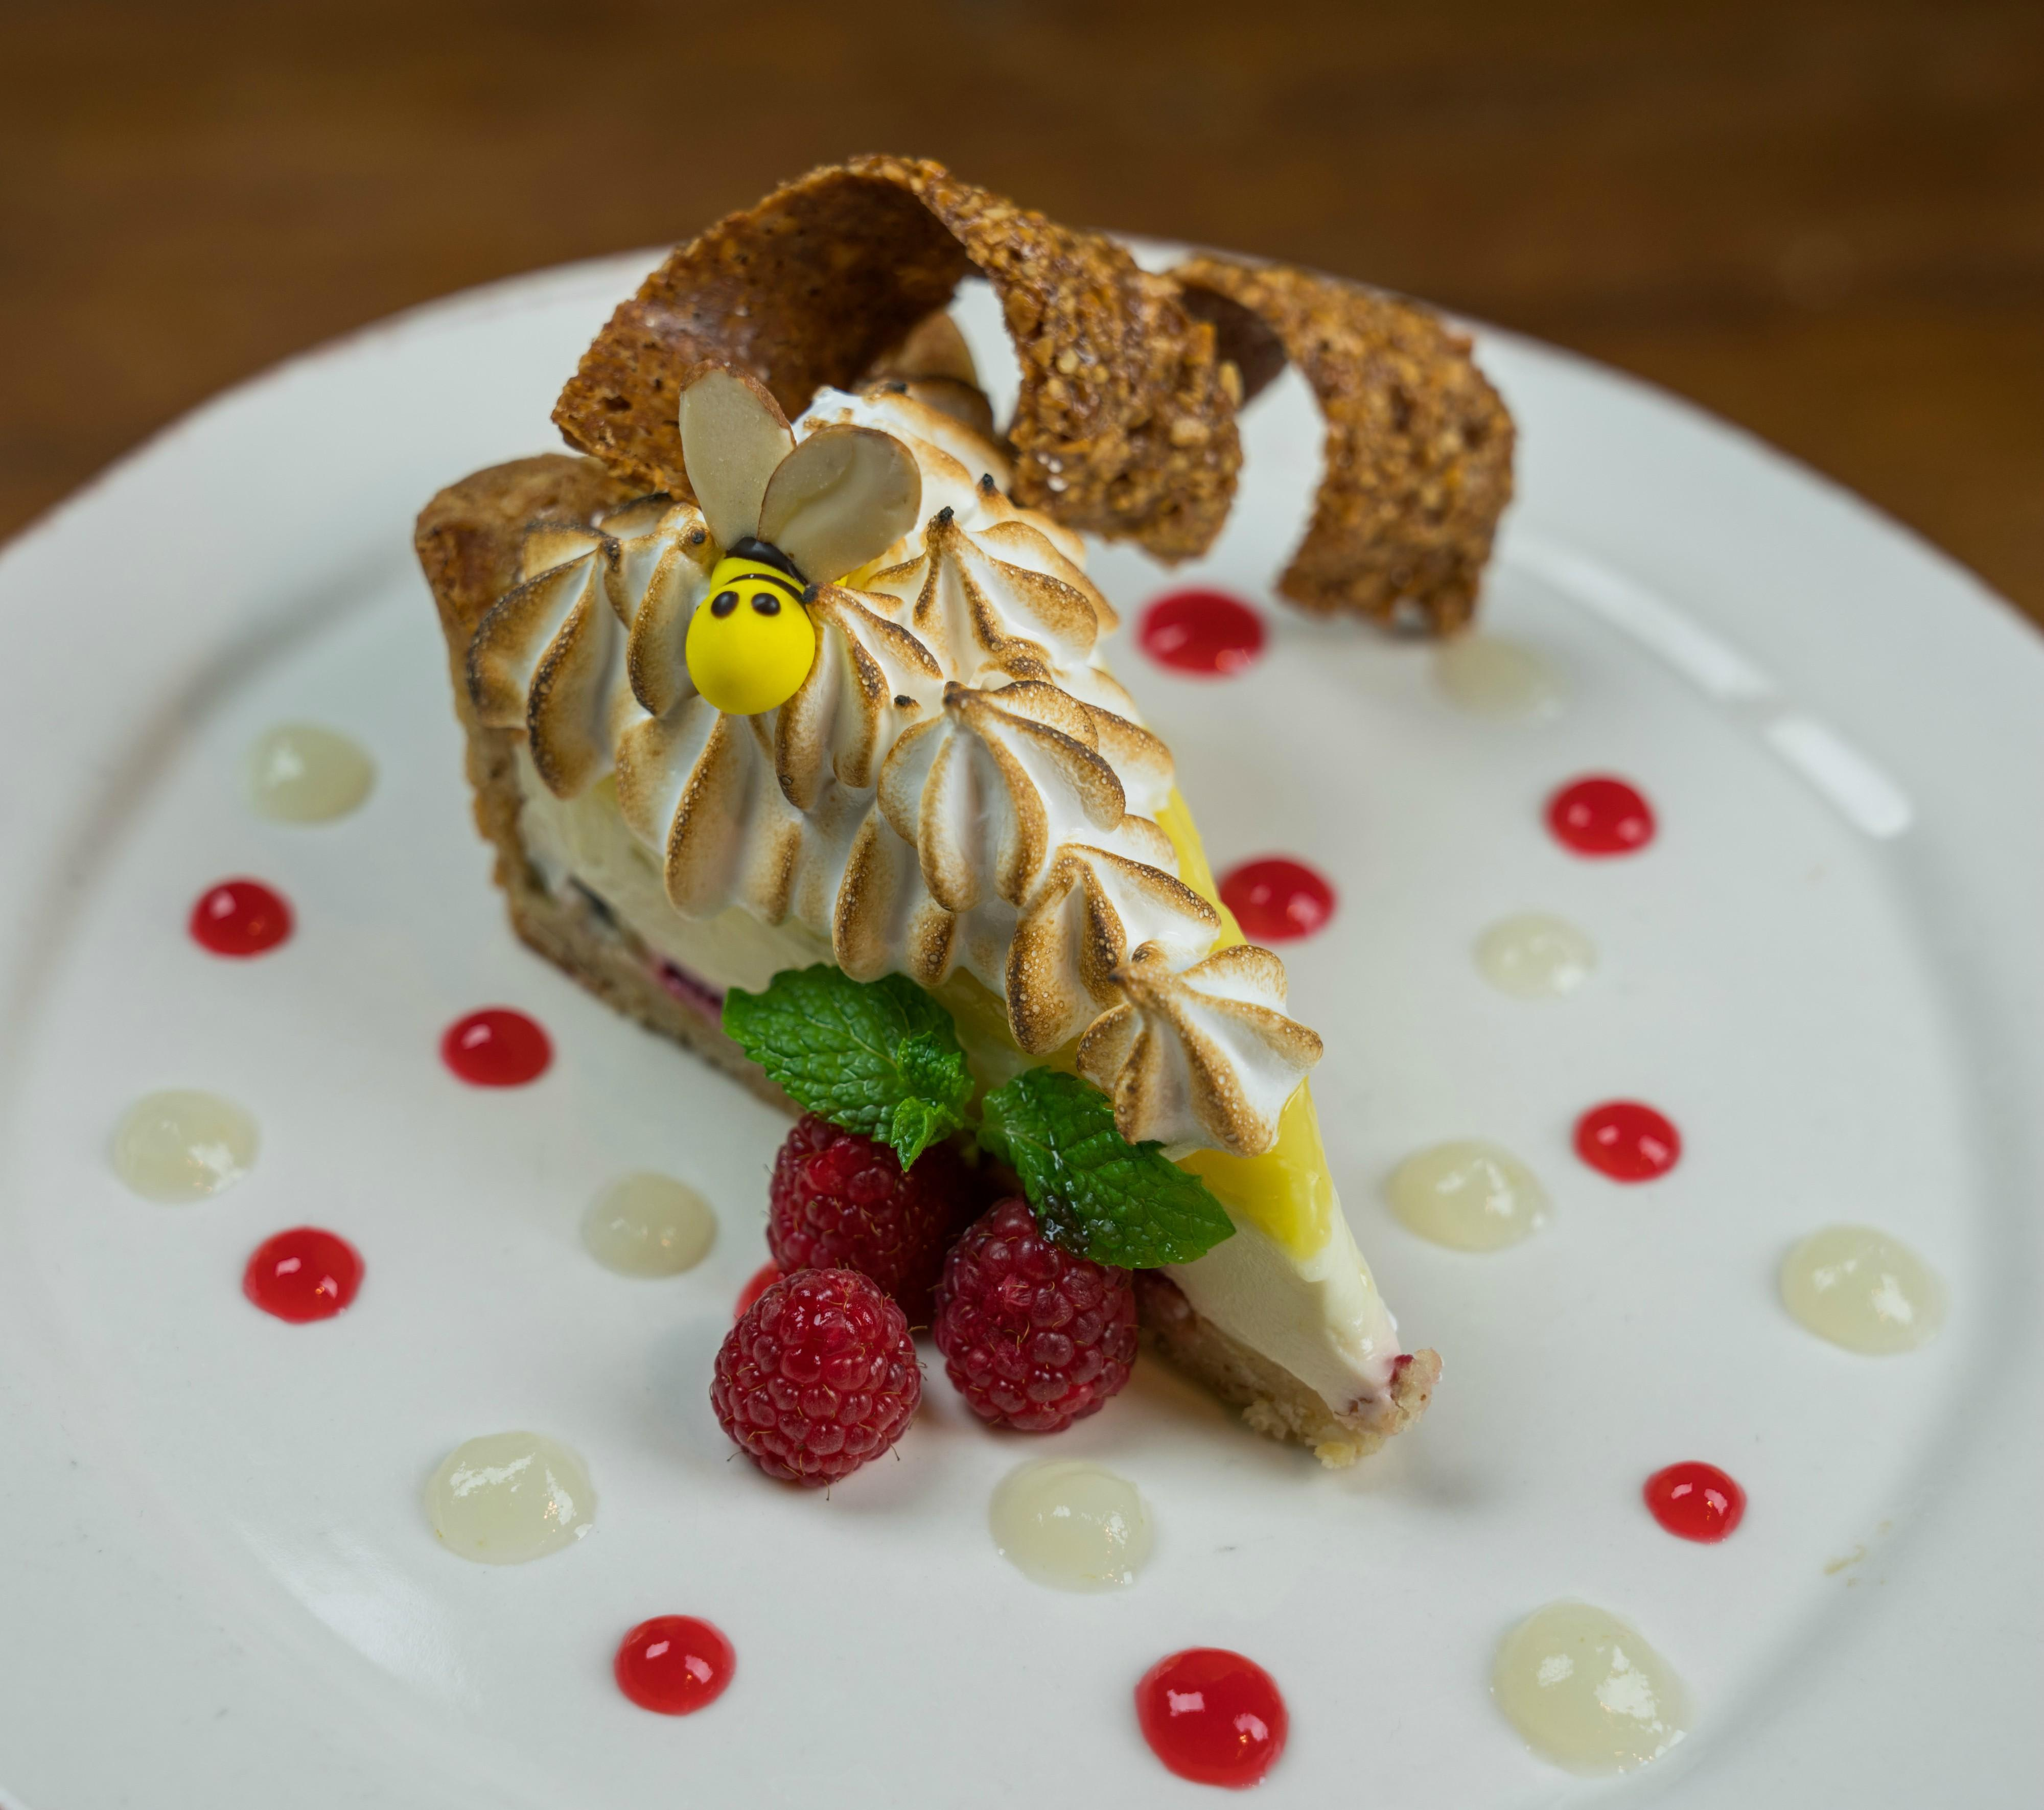 Lemon-Lime Sour Cream Meringue Pie Raspberries & sliced kiwi, baked in an almond crust at Tonto Bar & Grill